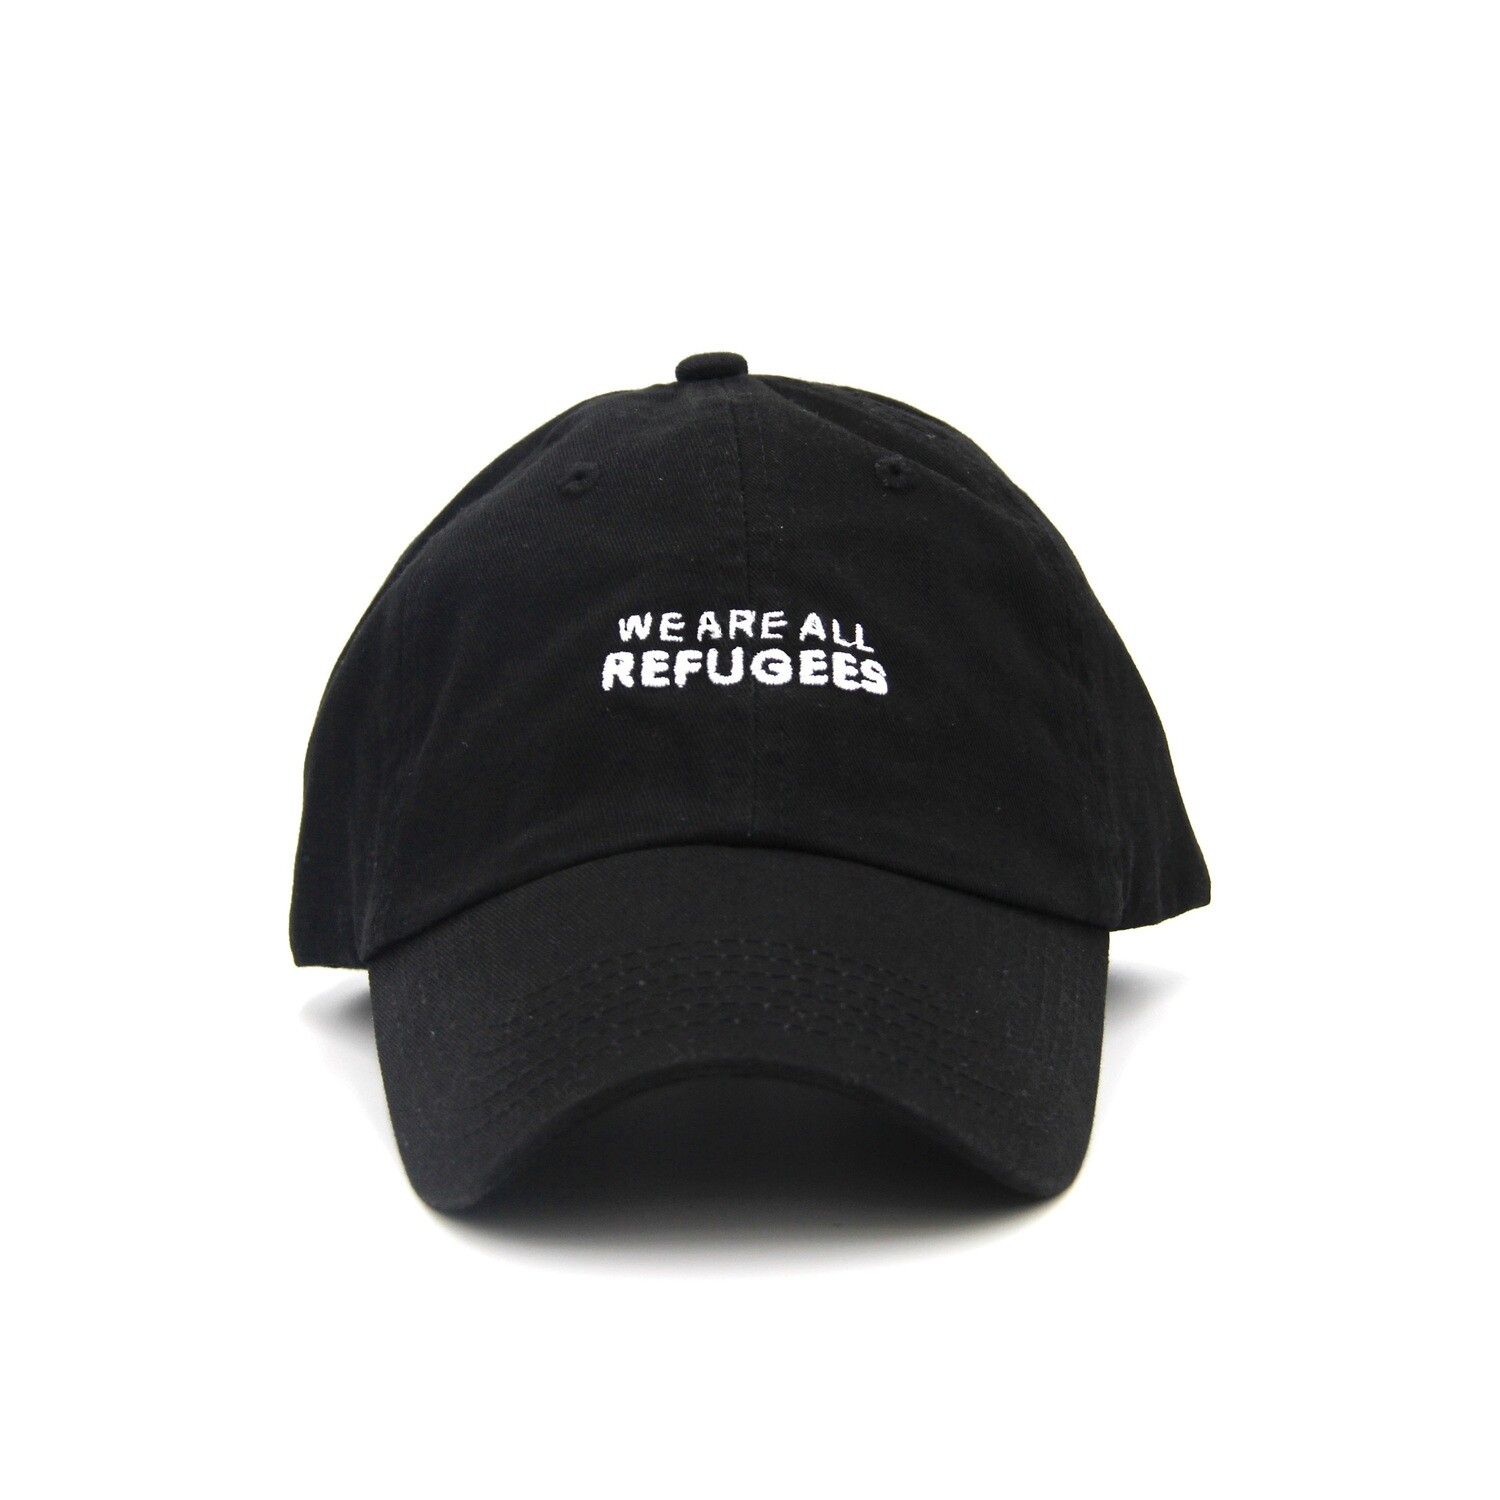 All Refugees Dad Cap